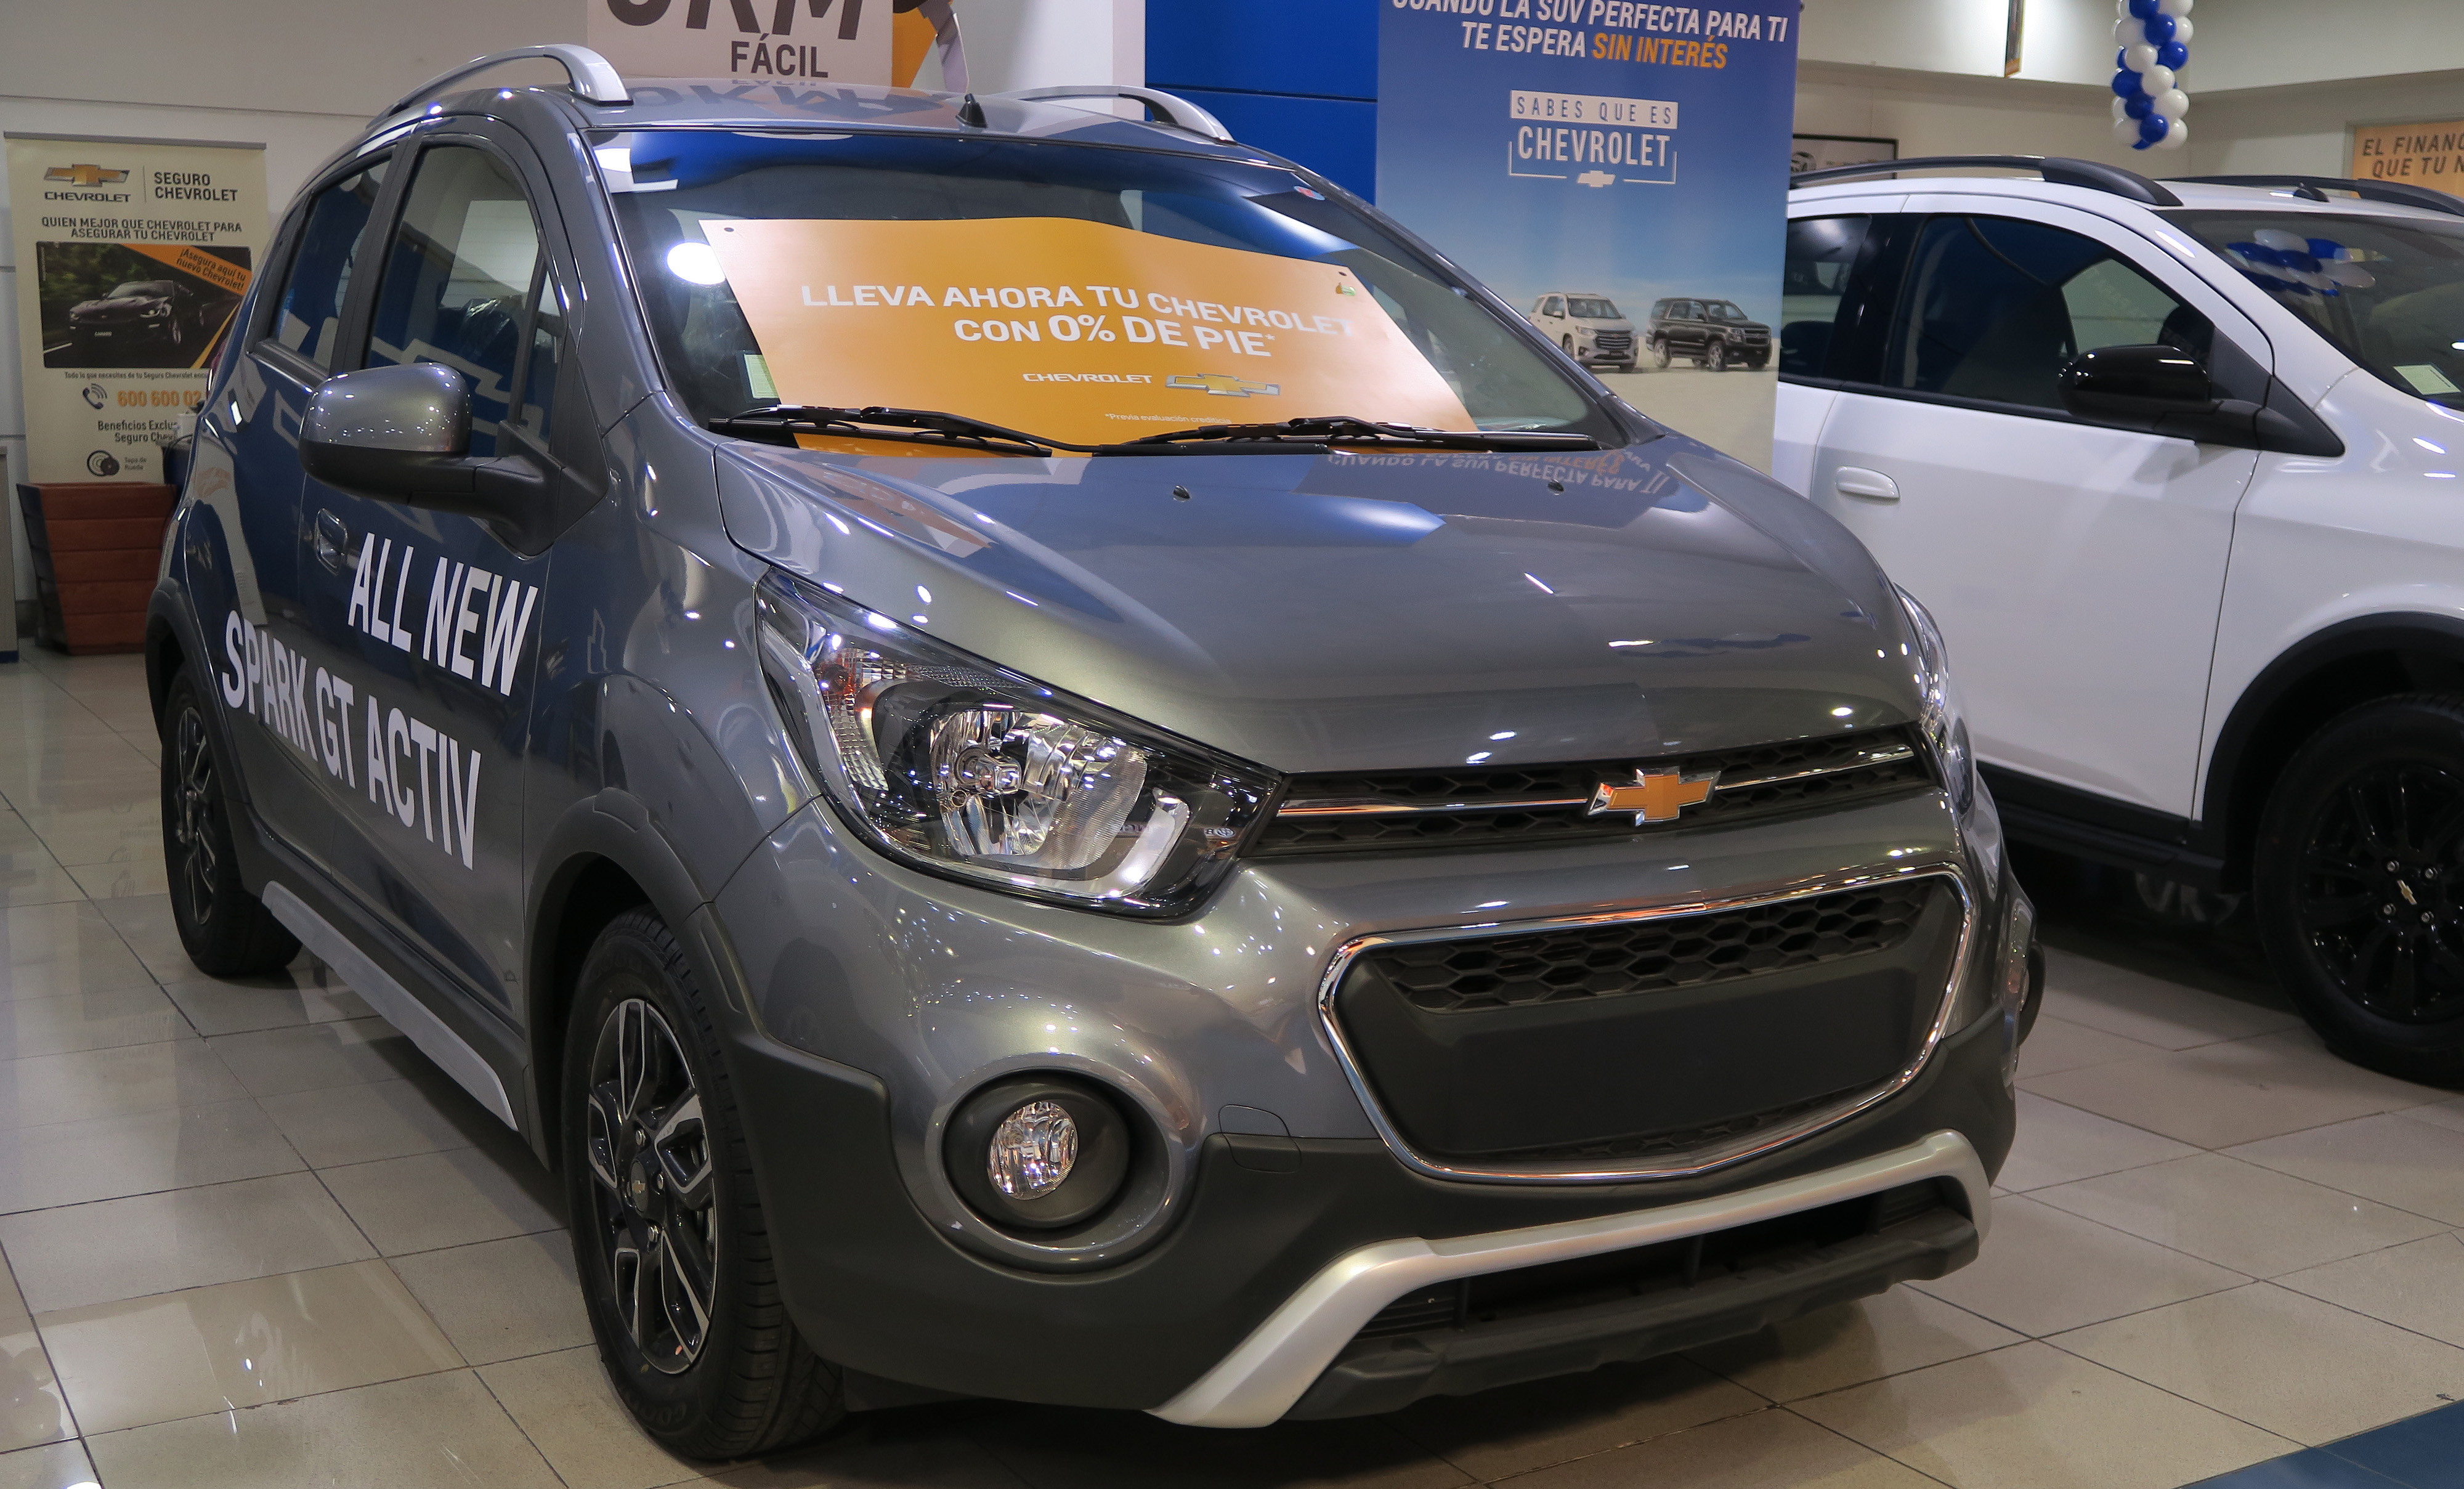 Chevrolet Spark Wikiwand